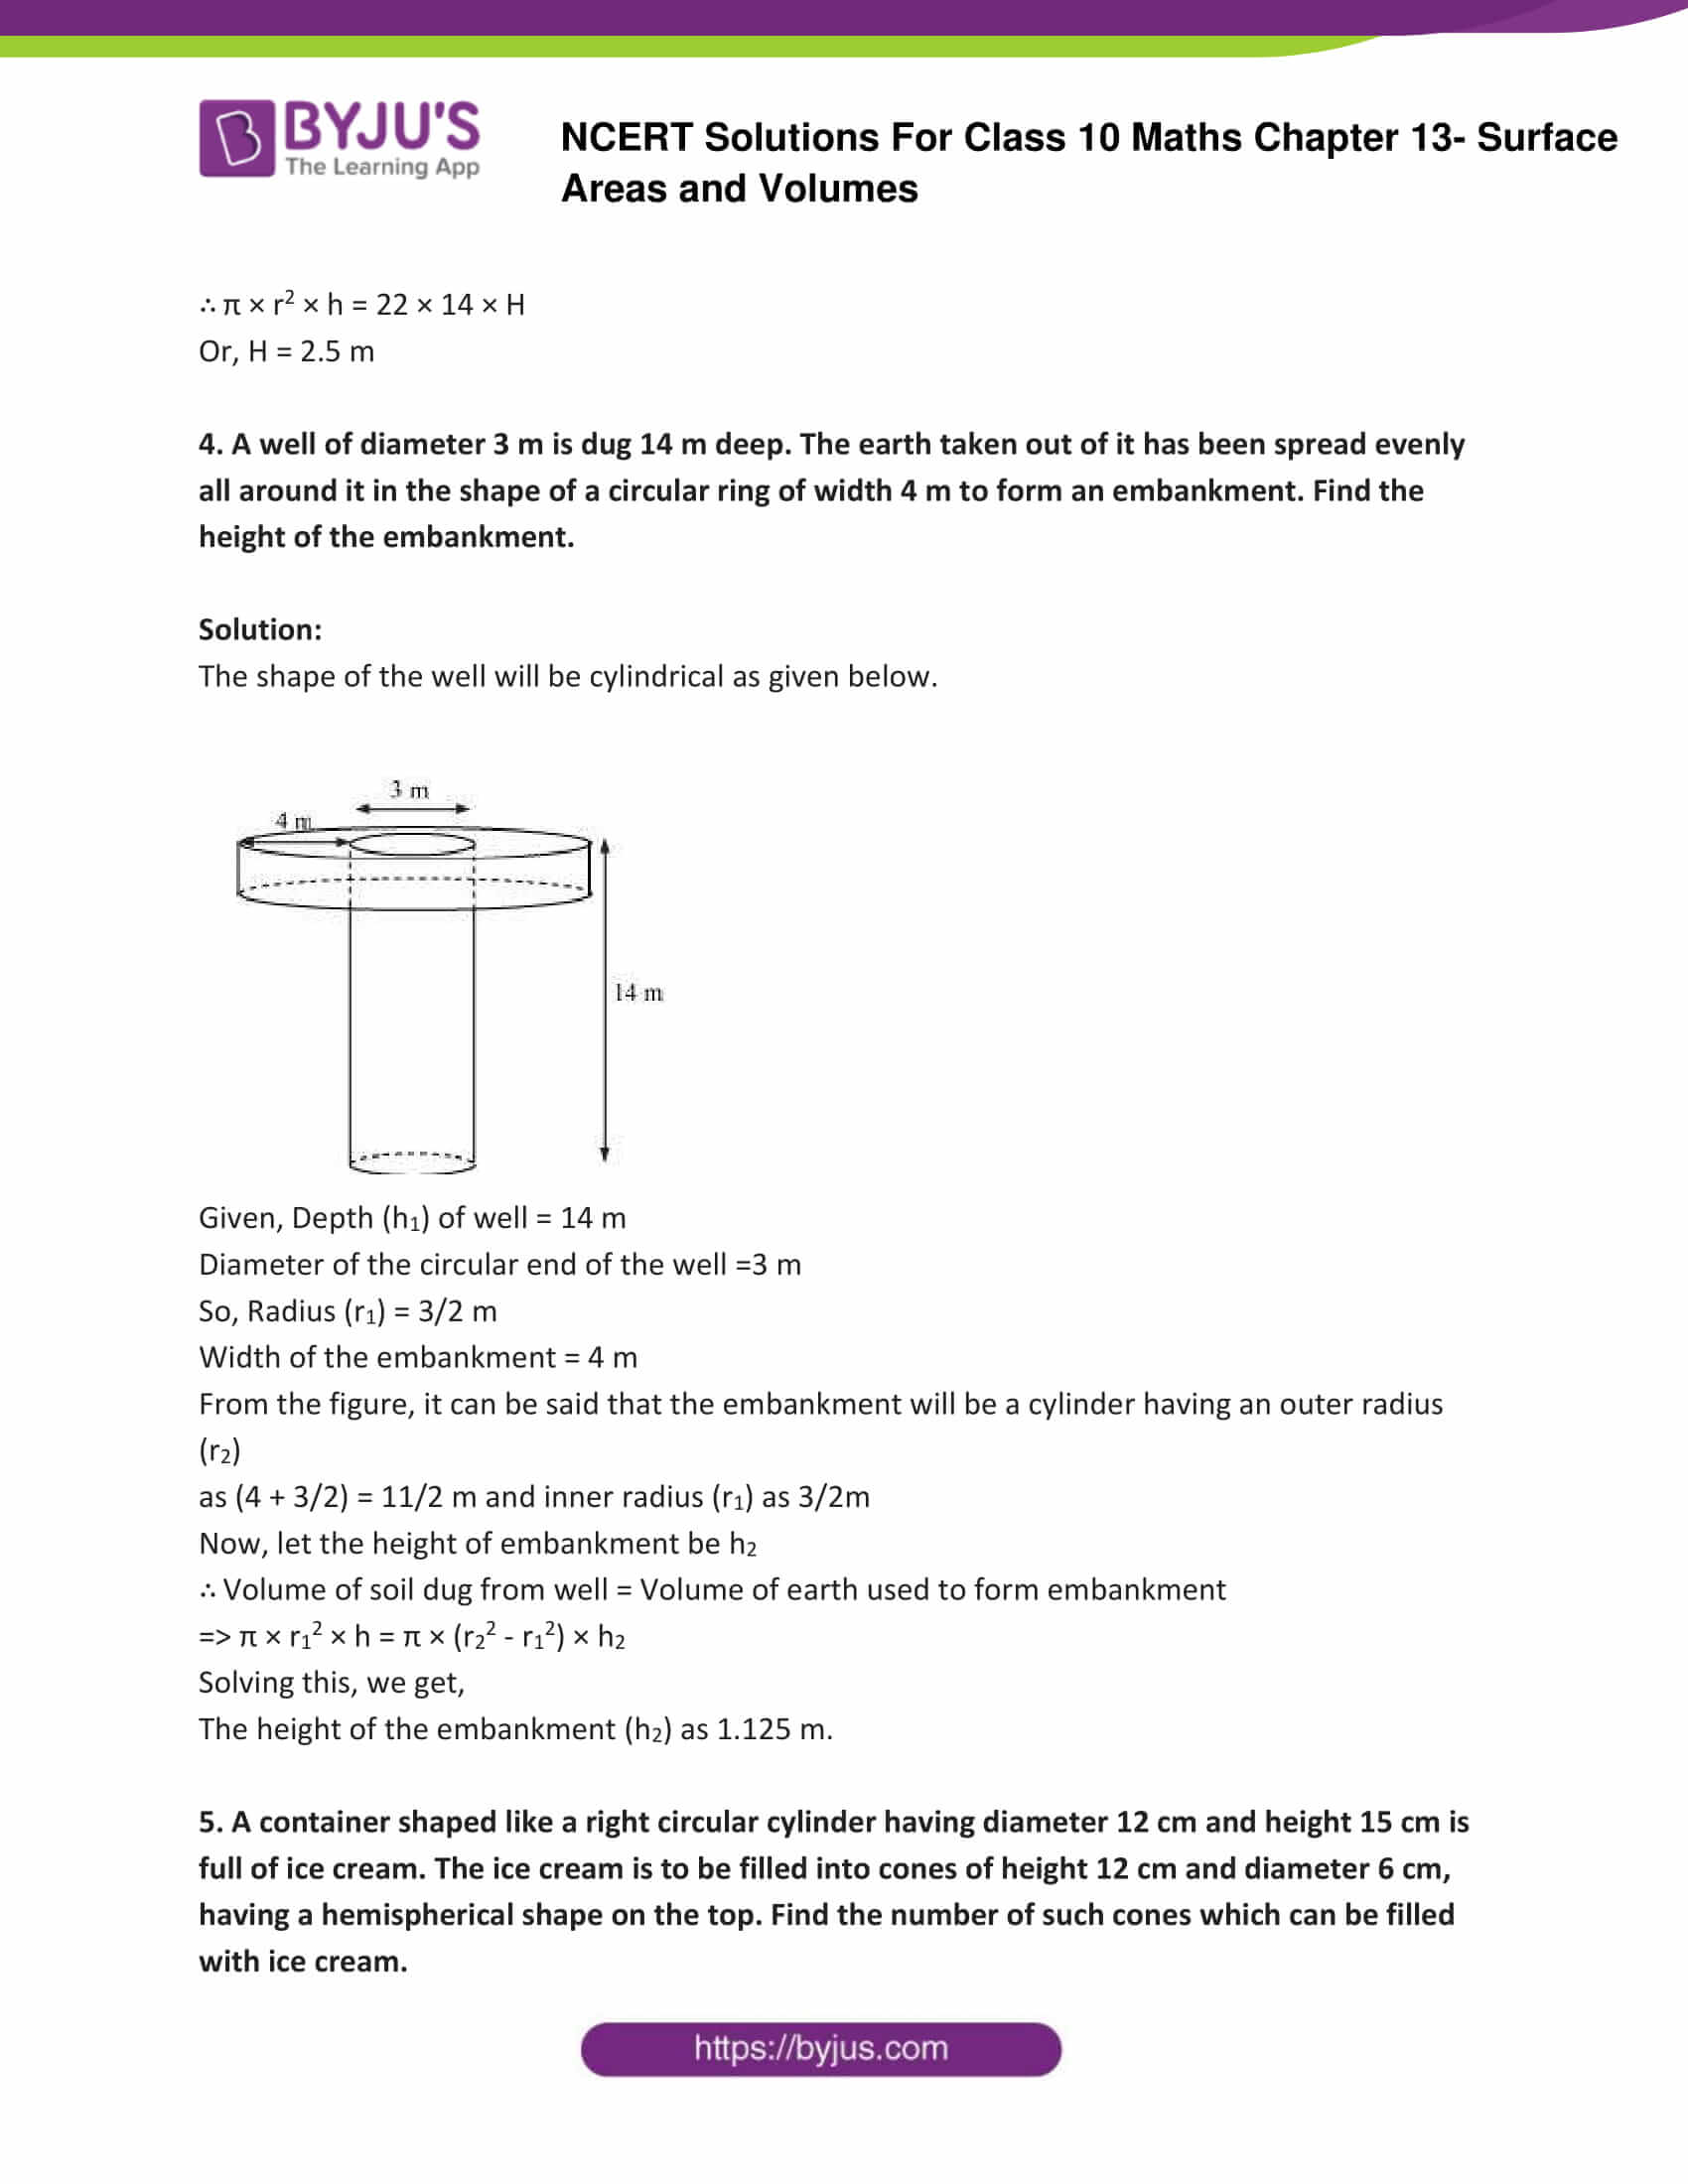 NCERT Solutions Class 10 Maths Chapter 13 Surface Areas and Volumes Part 16